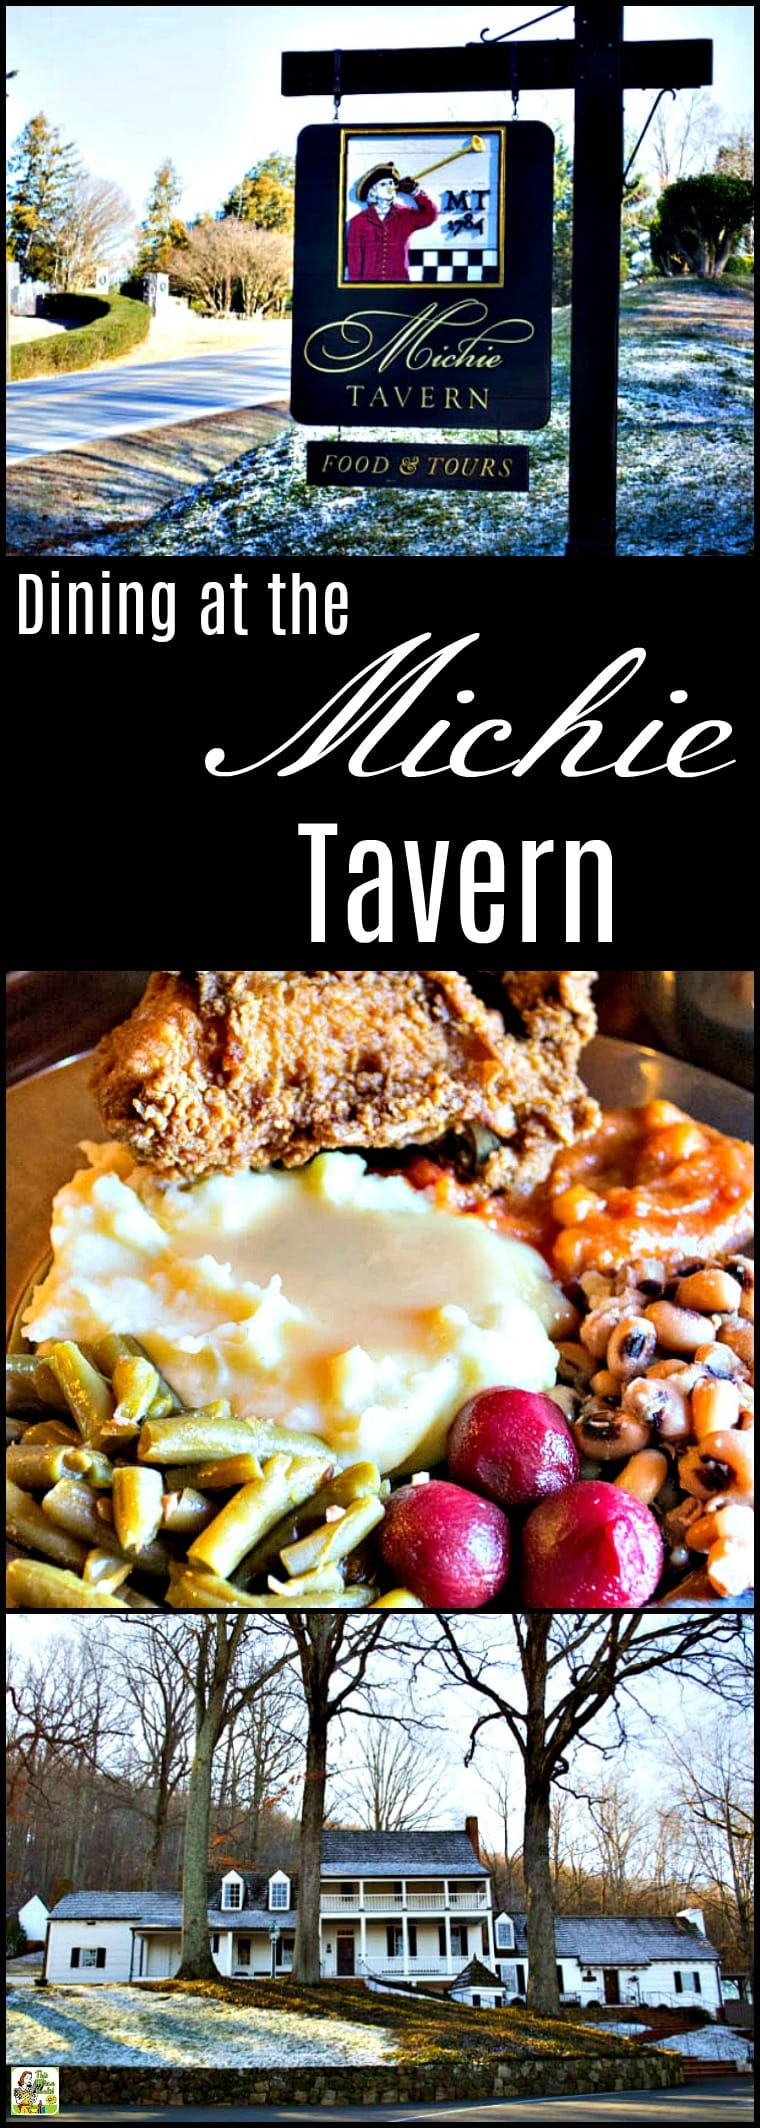 "Visit the Michie Tavern in Charlottesville, VA. Take a tour and then enjoy a meal of Southern fare ""at the ordinary."" #michietavern #travel #charlottesville #virginia #restaurants"